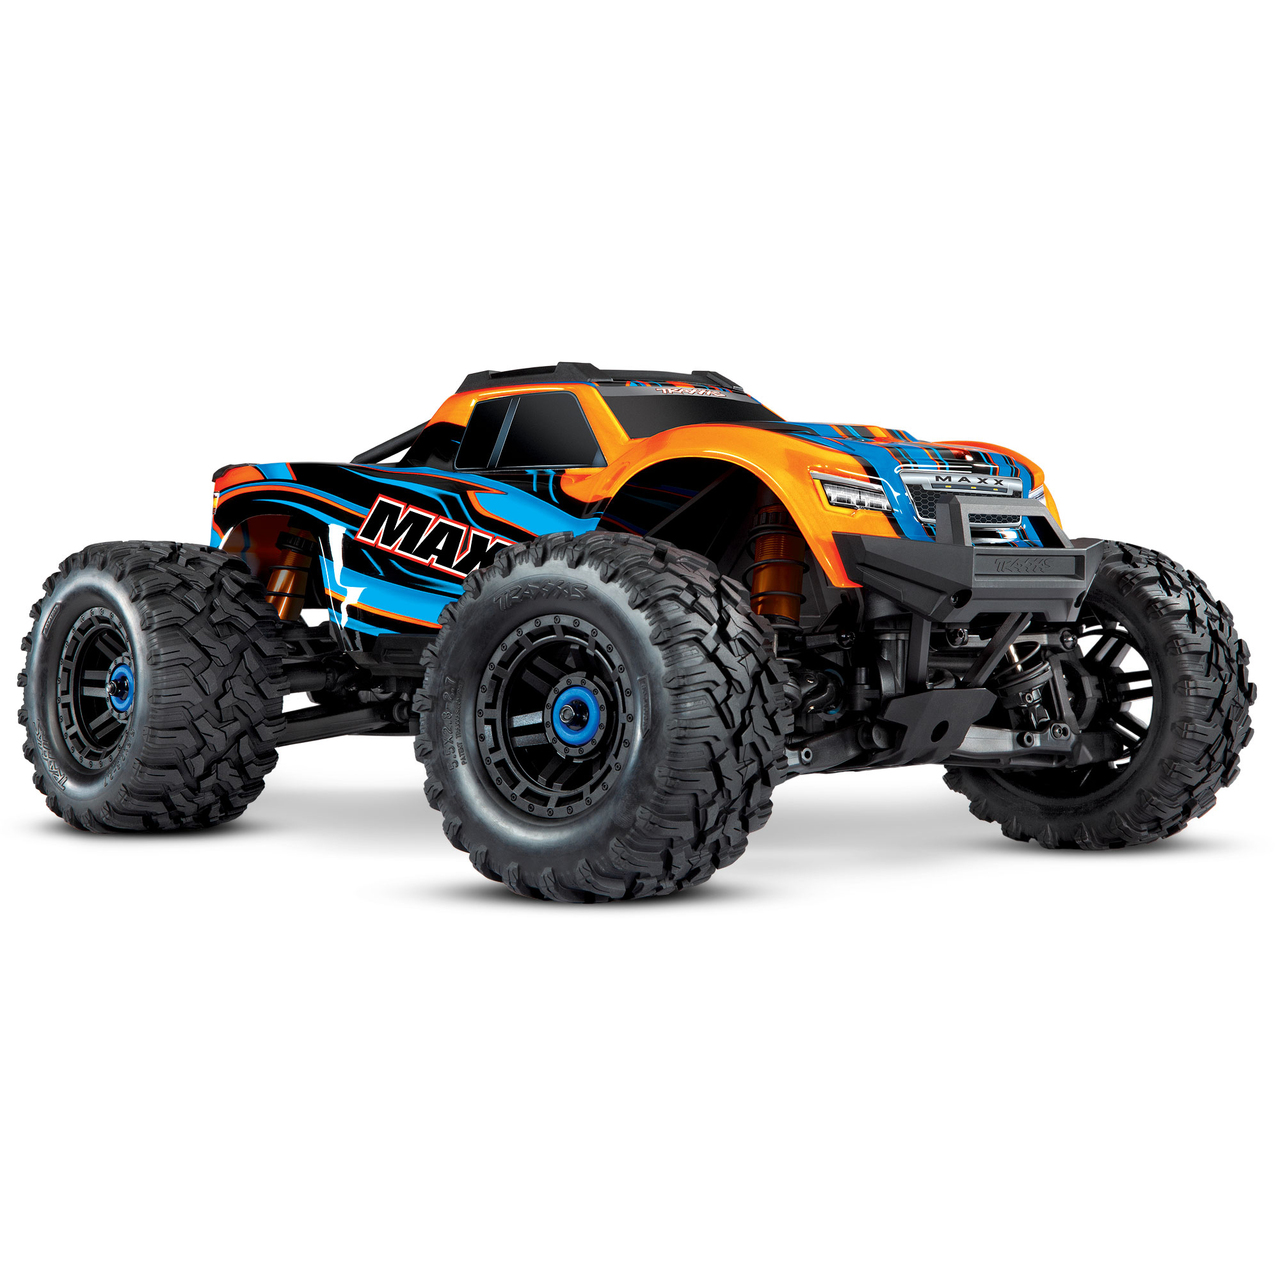 Compatible with the new 10th Scale Traxxas MAXX 4S stock body.